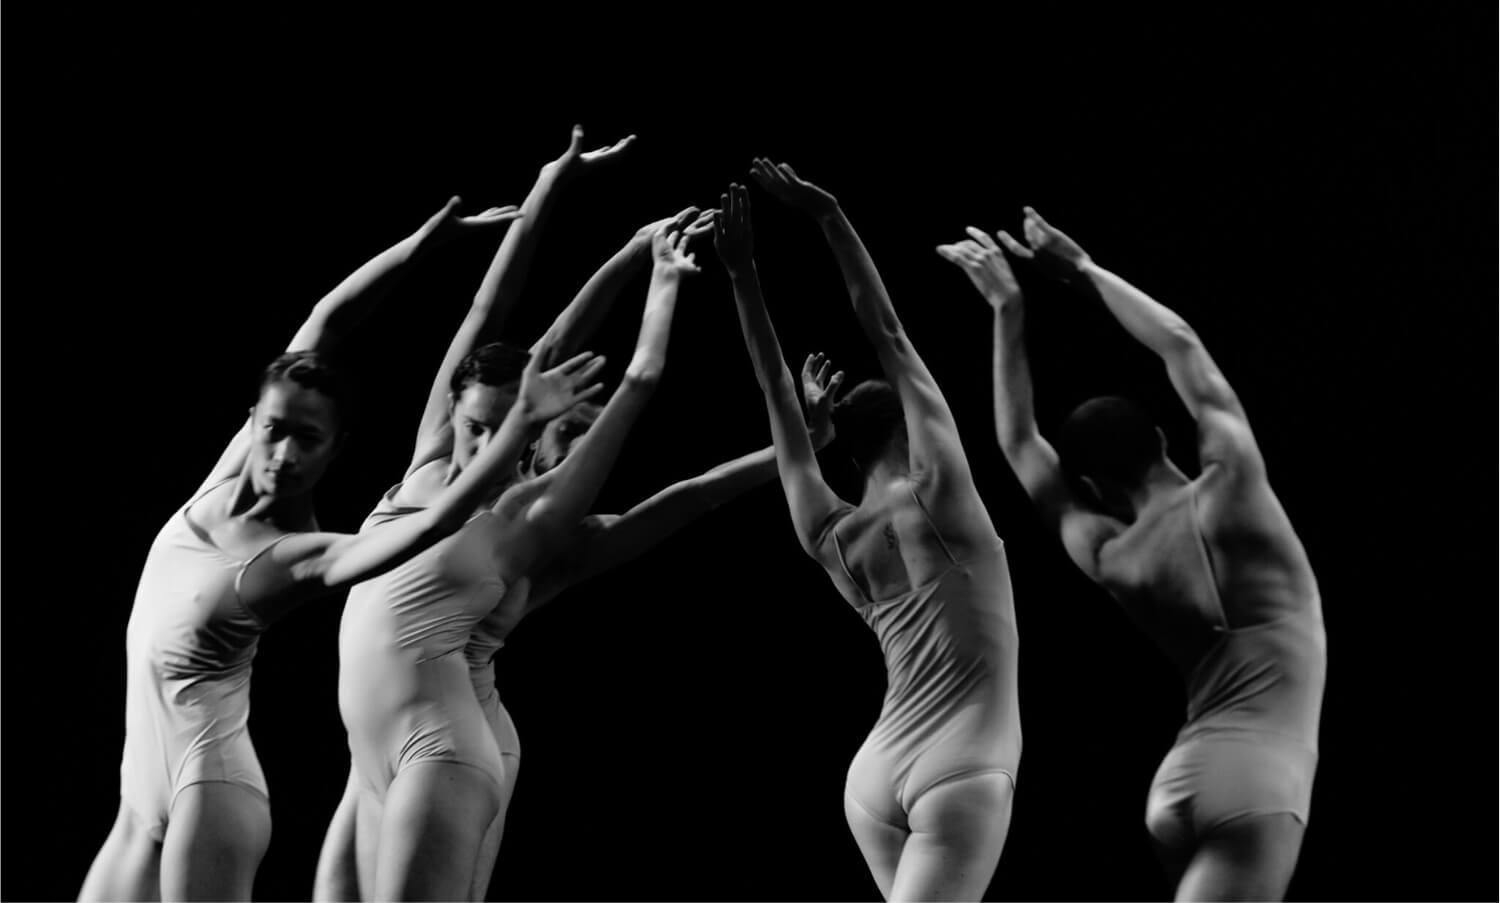 Dancers with their arms in air as part of the performance of Love Chapter at EIF (c) Ryan Buchanan